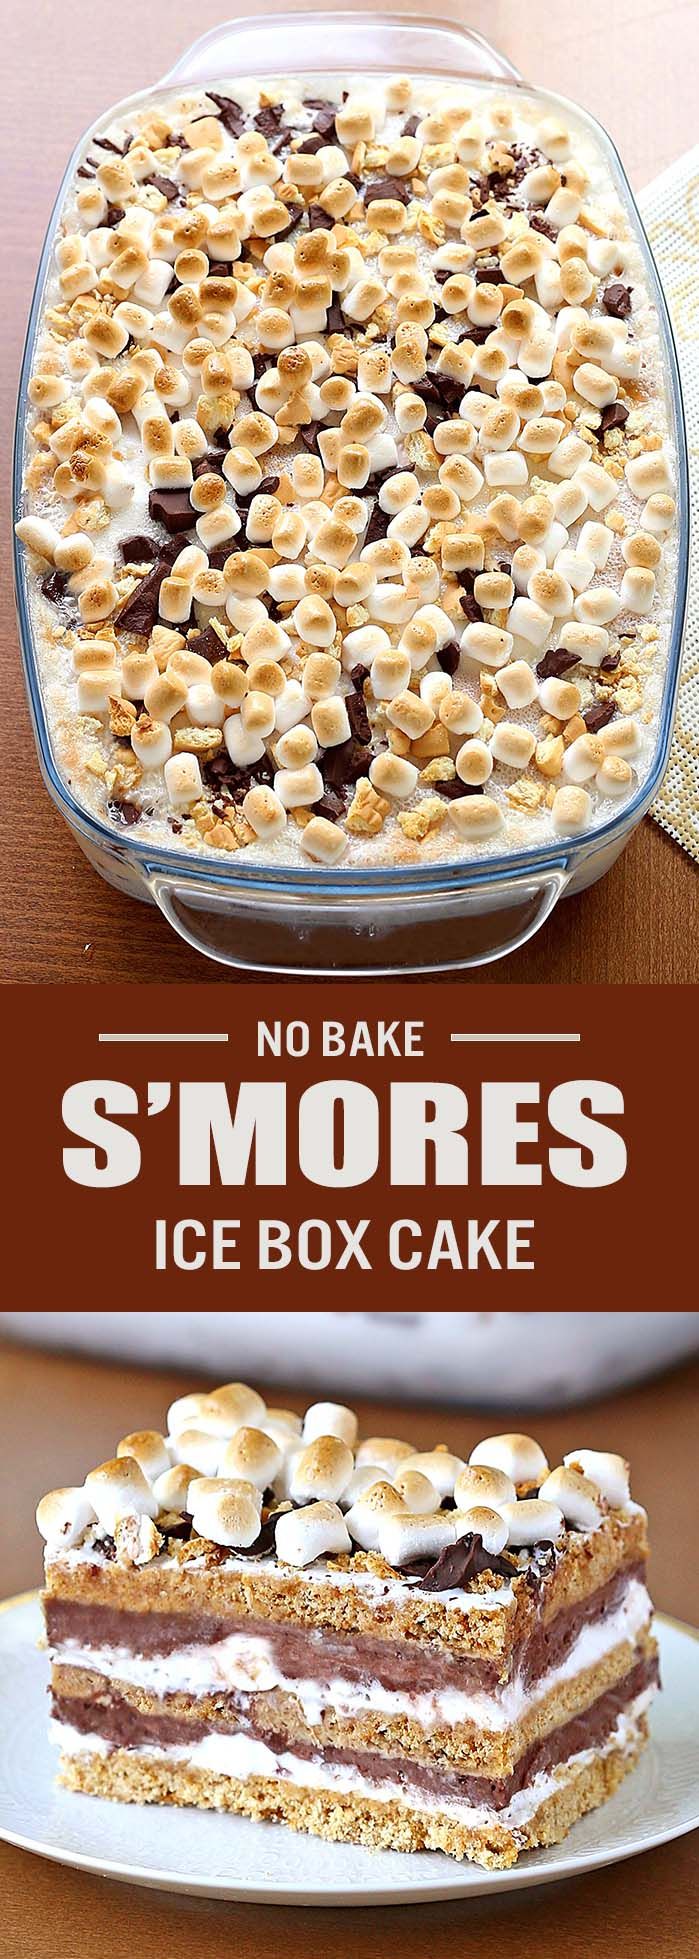 All the flavors of real s'mores are incorporated into one amazing cake! S'mores Icebox Cake with layers of decadent chocolate ganache, marshmallow creme  and cake-like graham crackers.